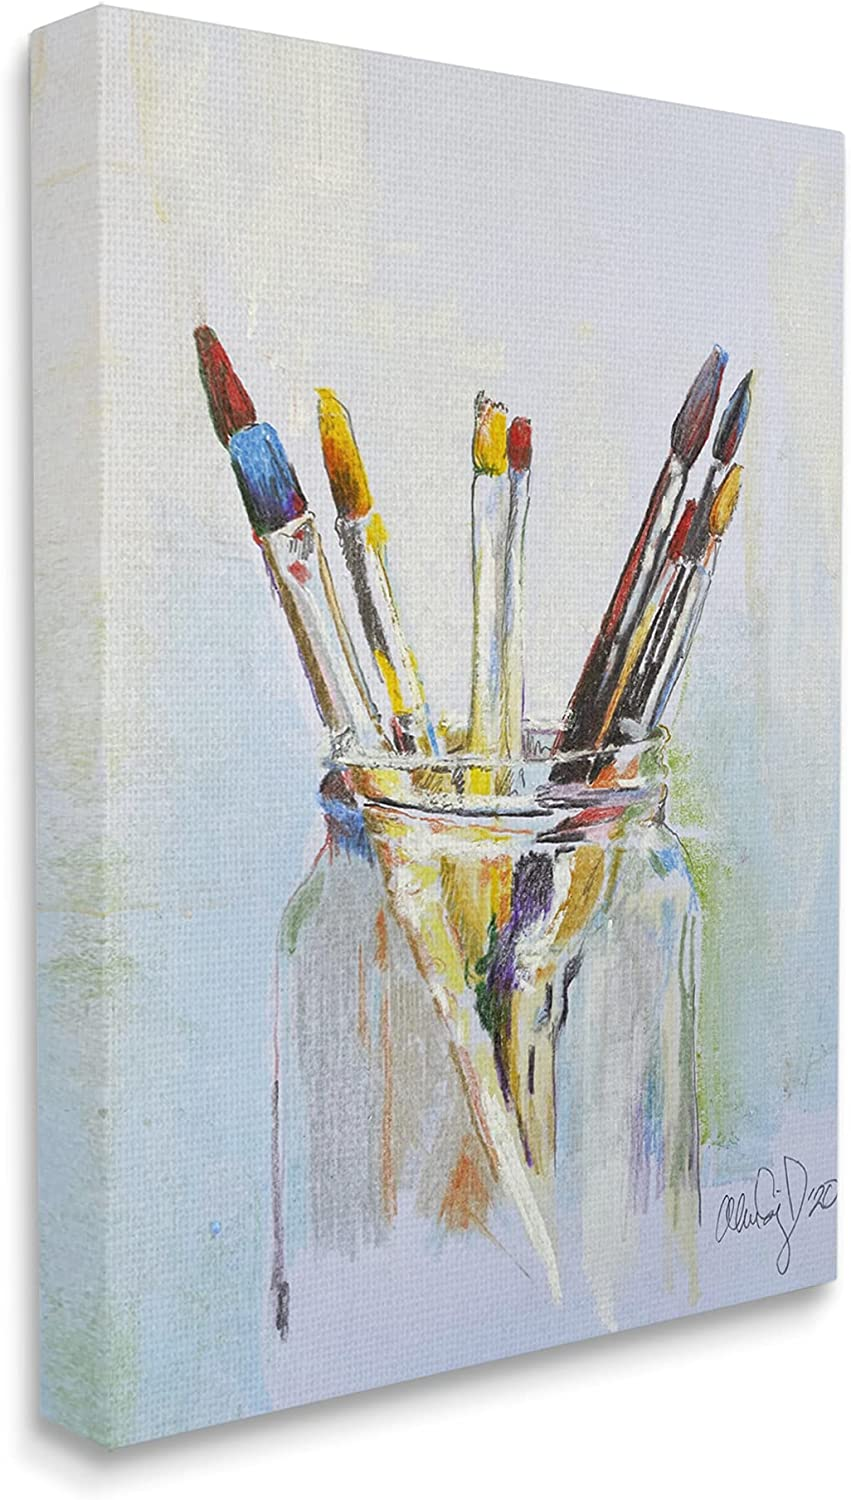 Stupell Max 59% OFF Industries In stock Paintbrushes in Glass Expressive Jar T Artist